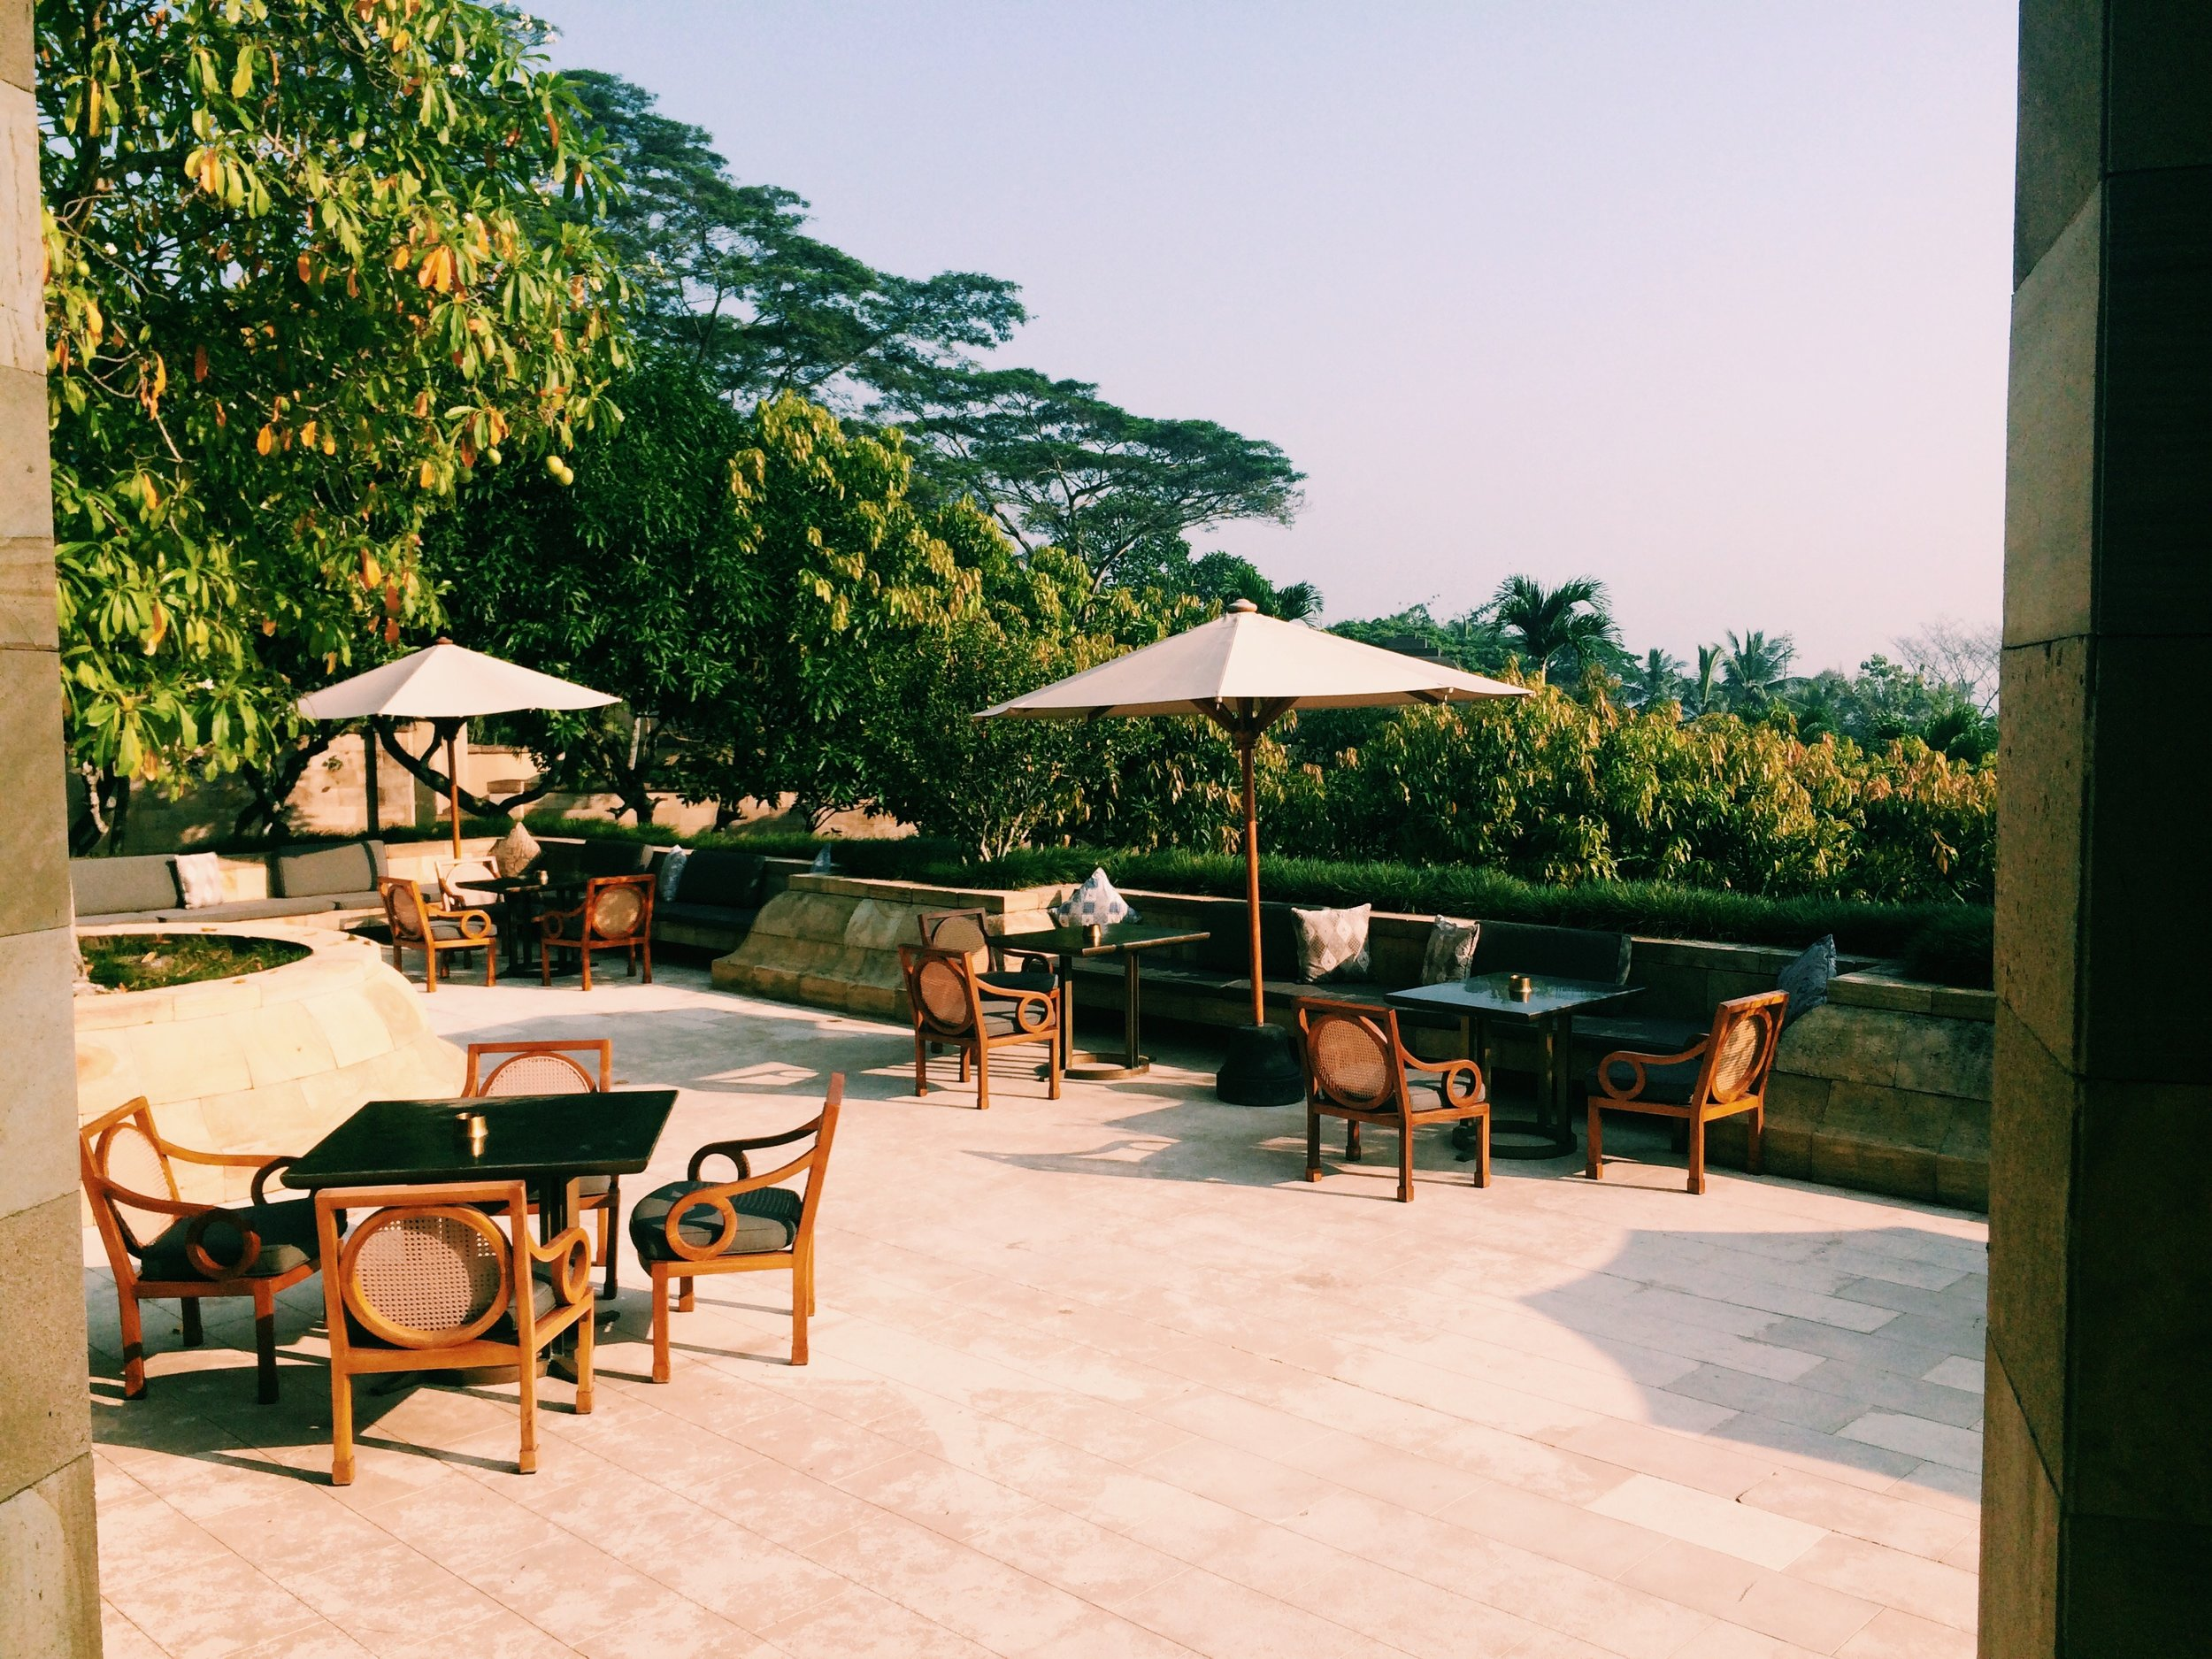 Catch the late afternoon sun outside in peace on the terrace while you are served freshly ground tea and Javanese Pastries.